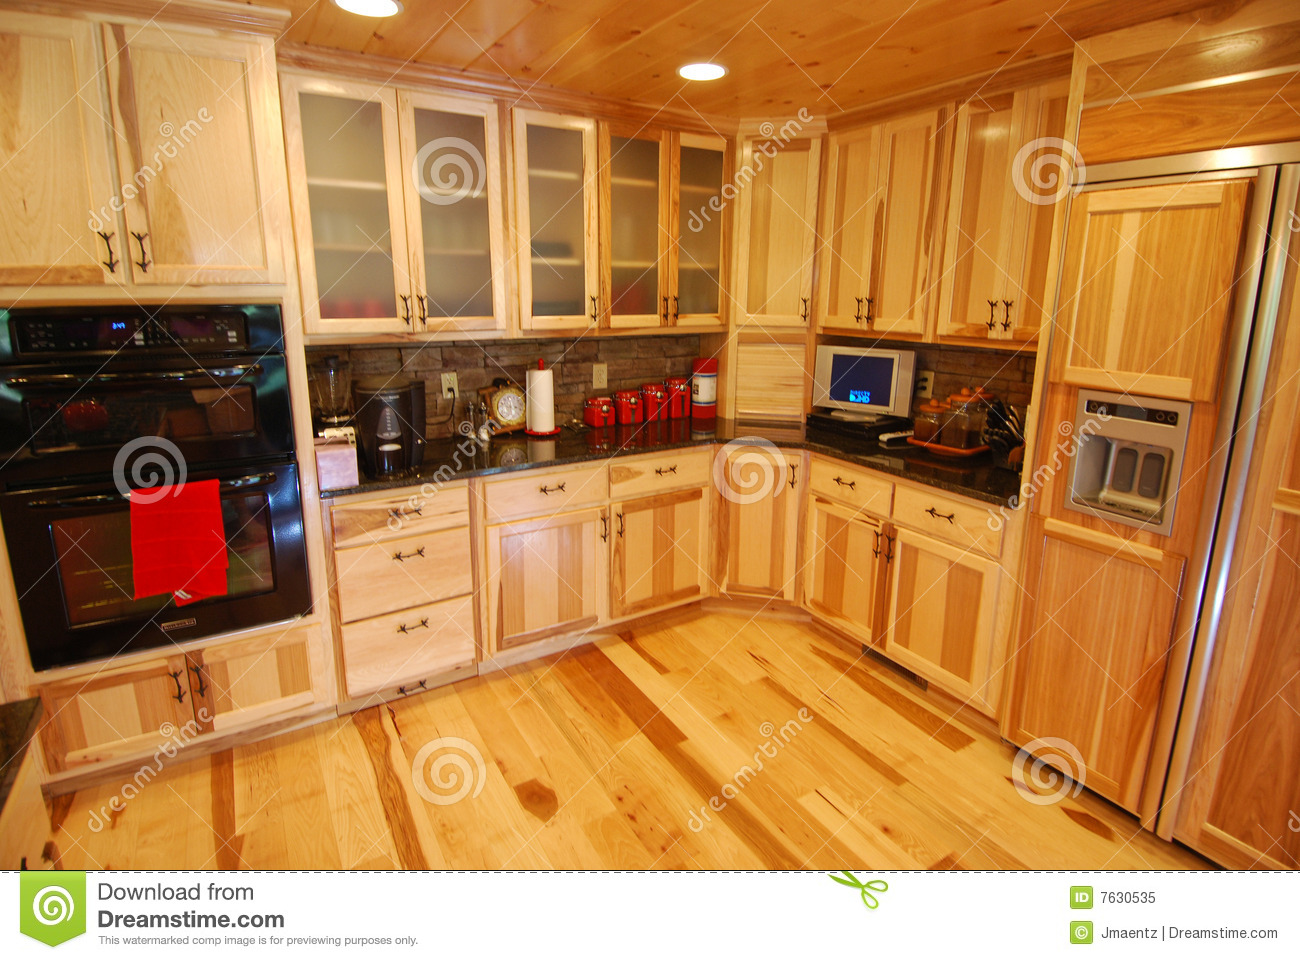 Log house kitchen interior stock image Image of kitchen